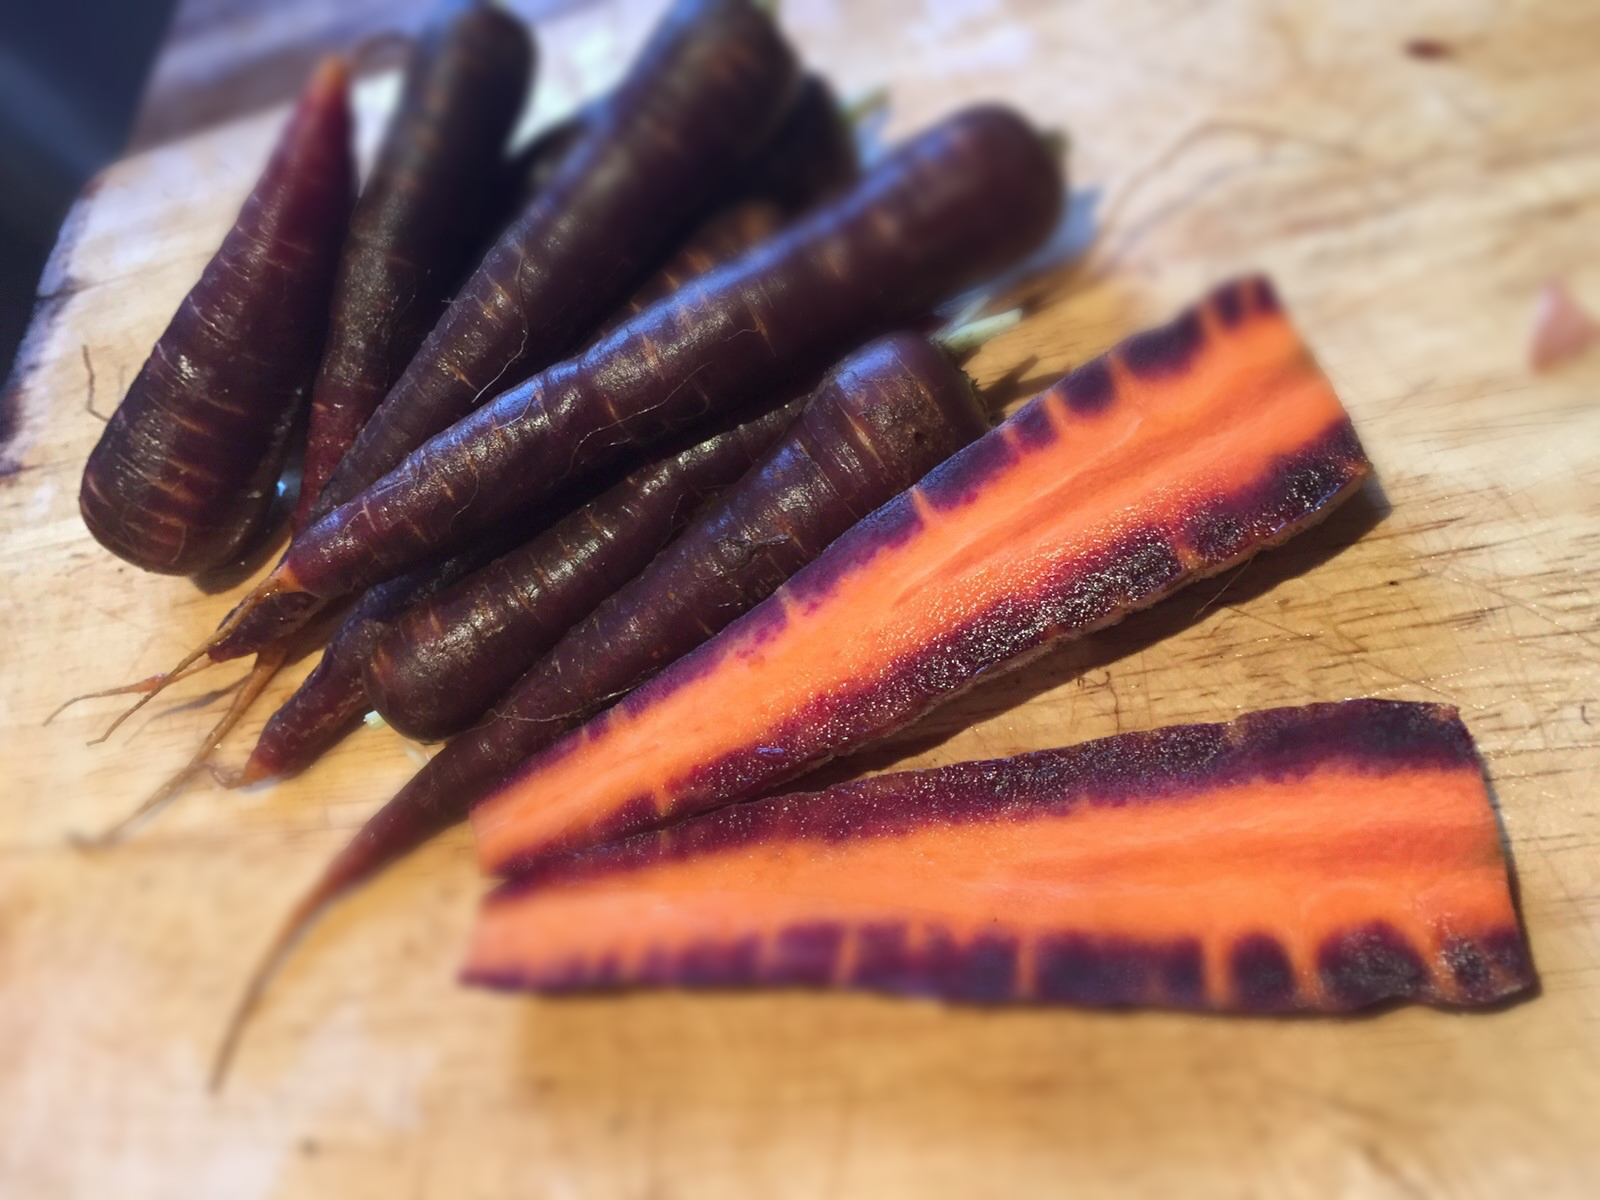 Purple carrots flesh